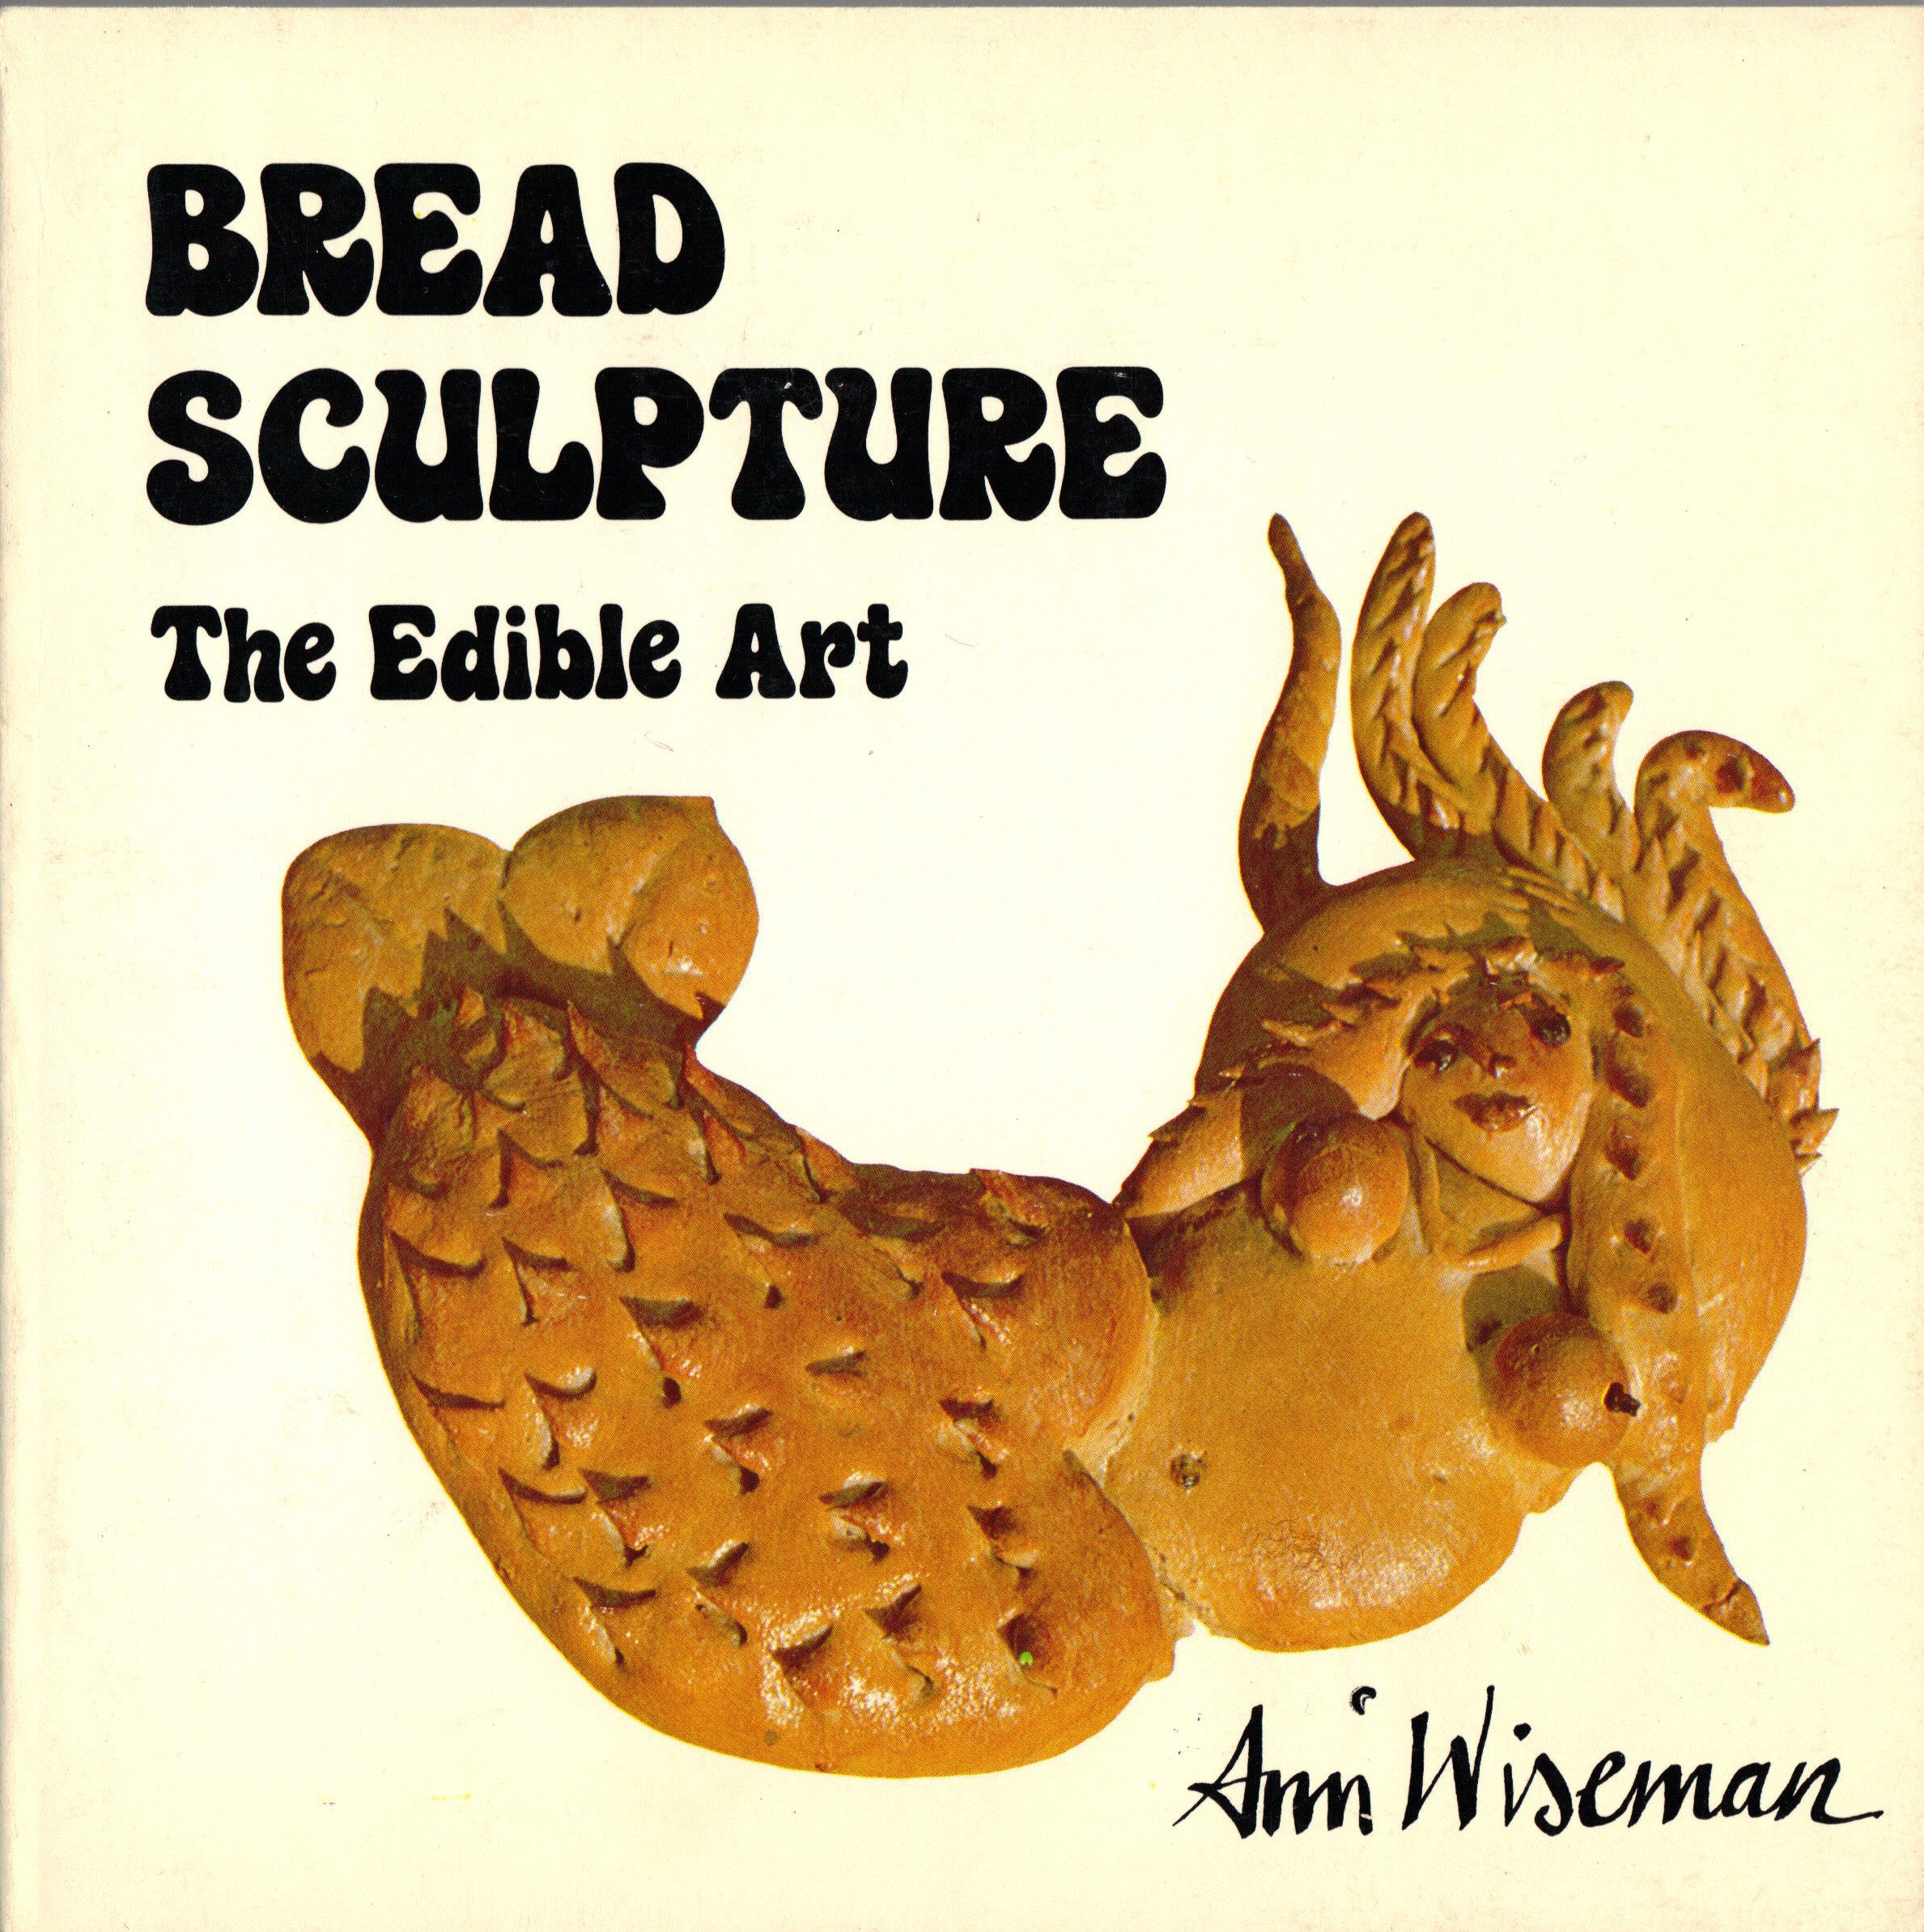 Bread Sculpture: The Edible Art, Ann Wiseman